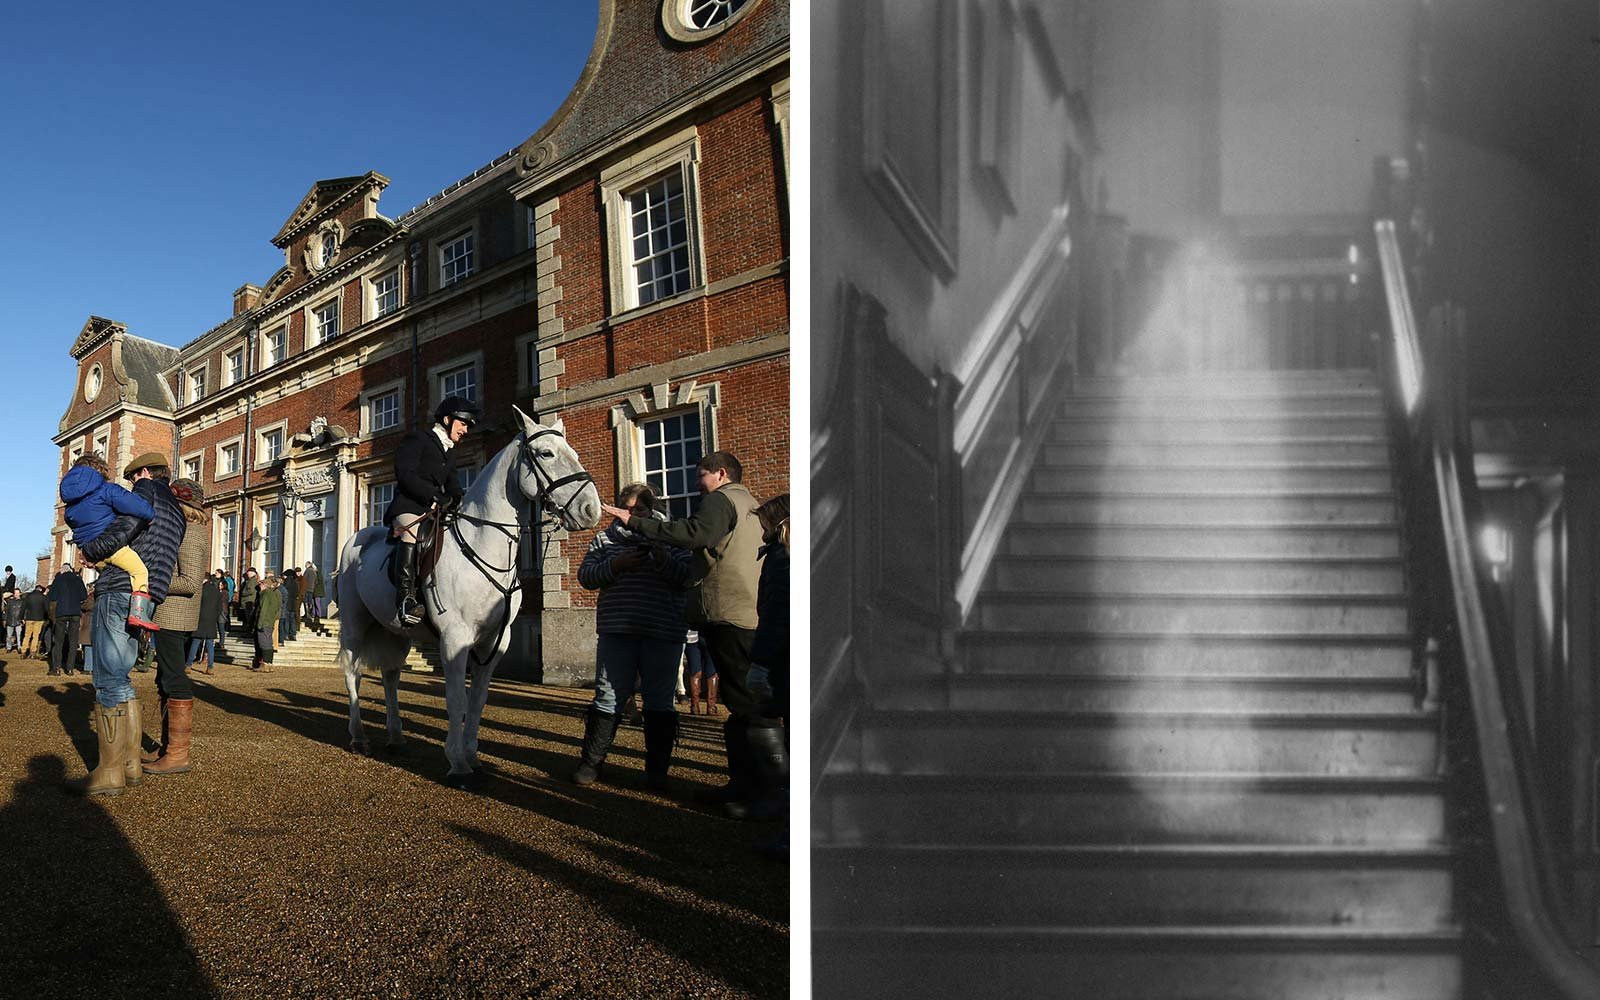 The history of real haunted houses